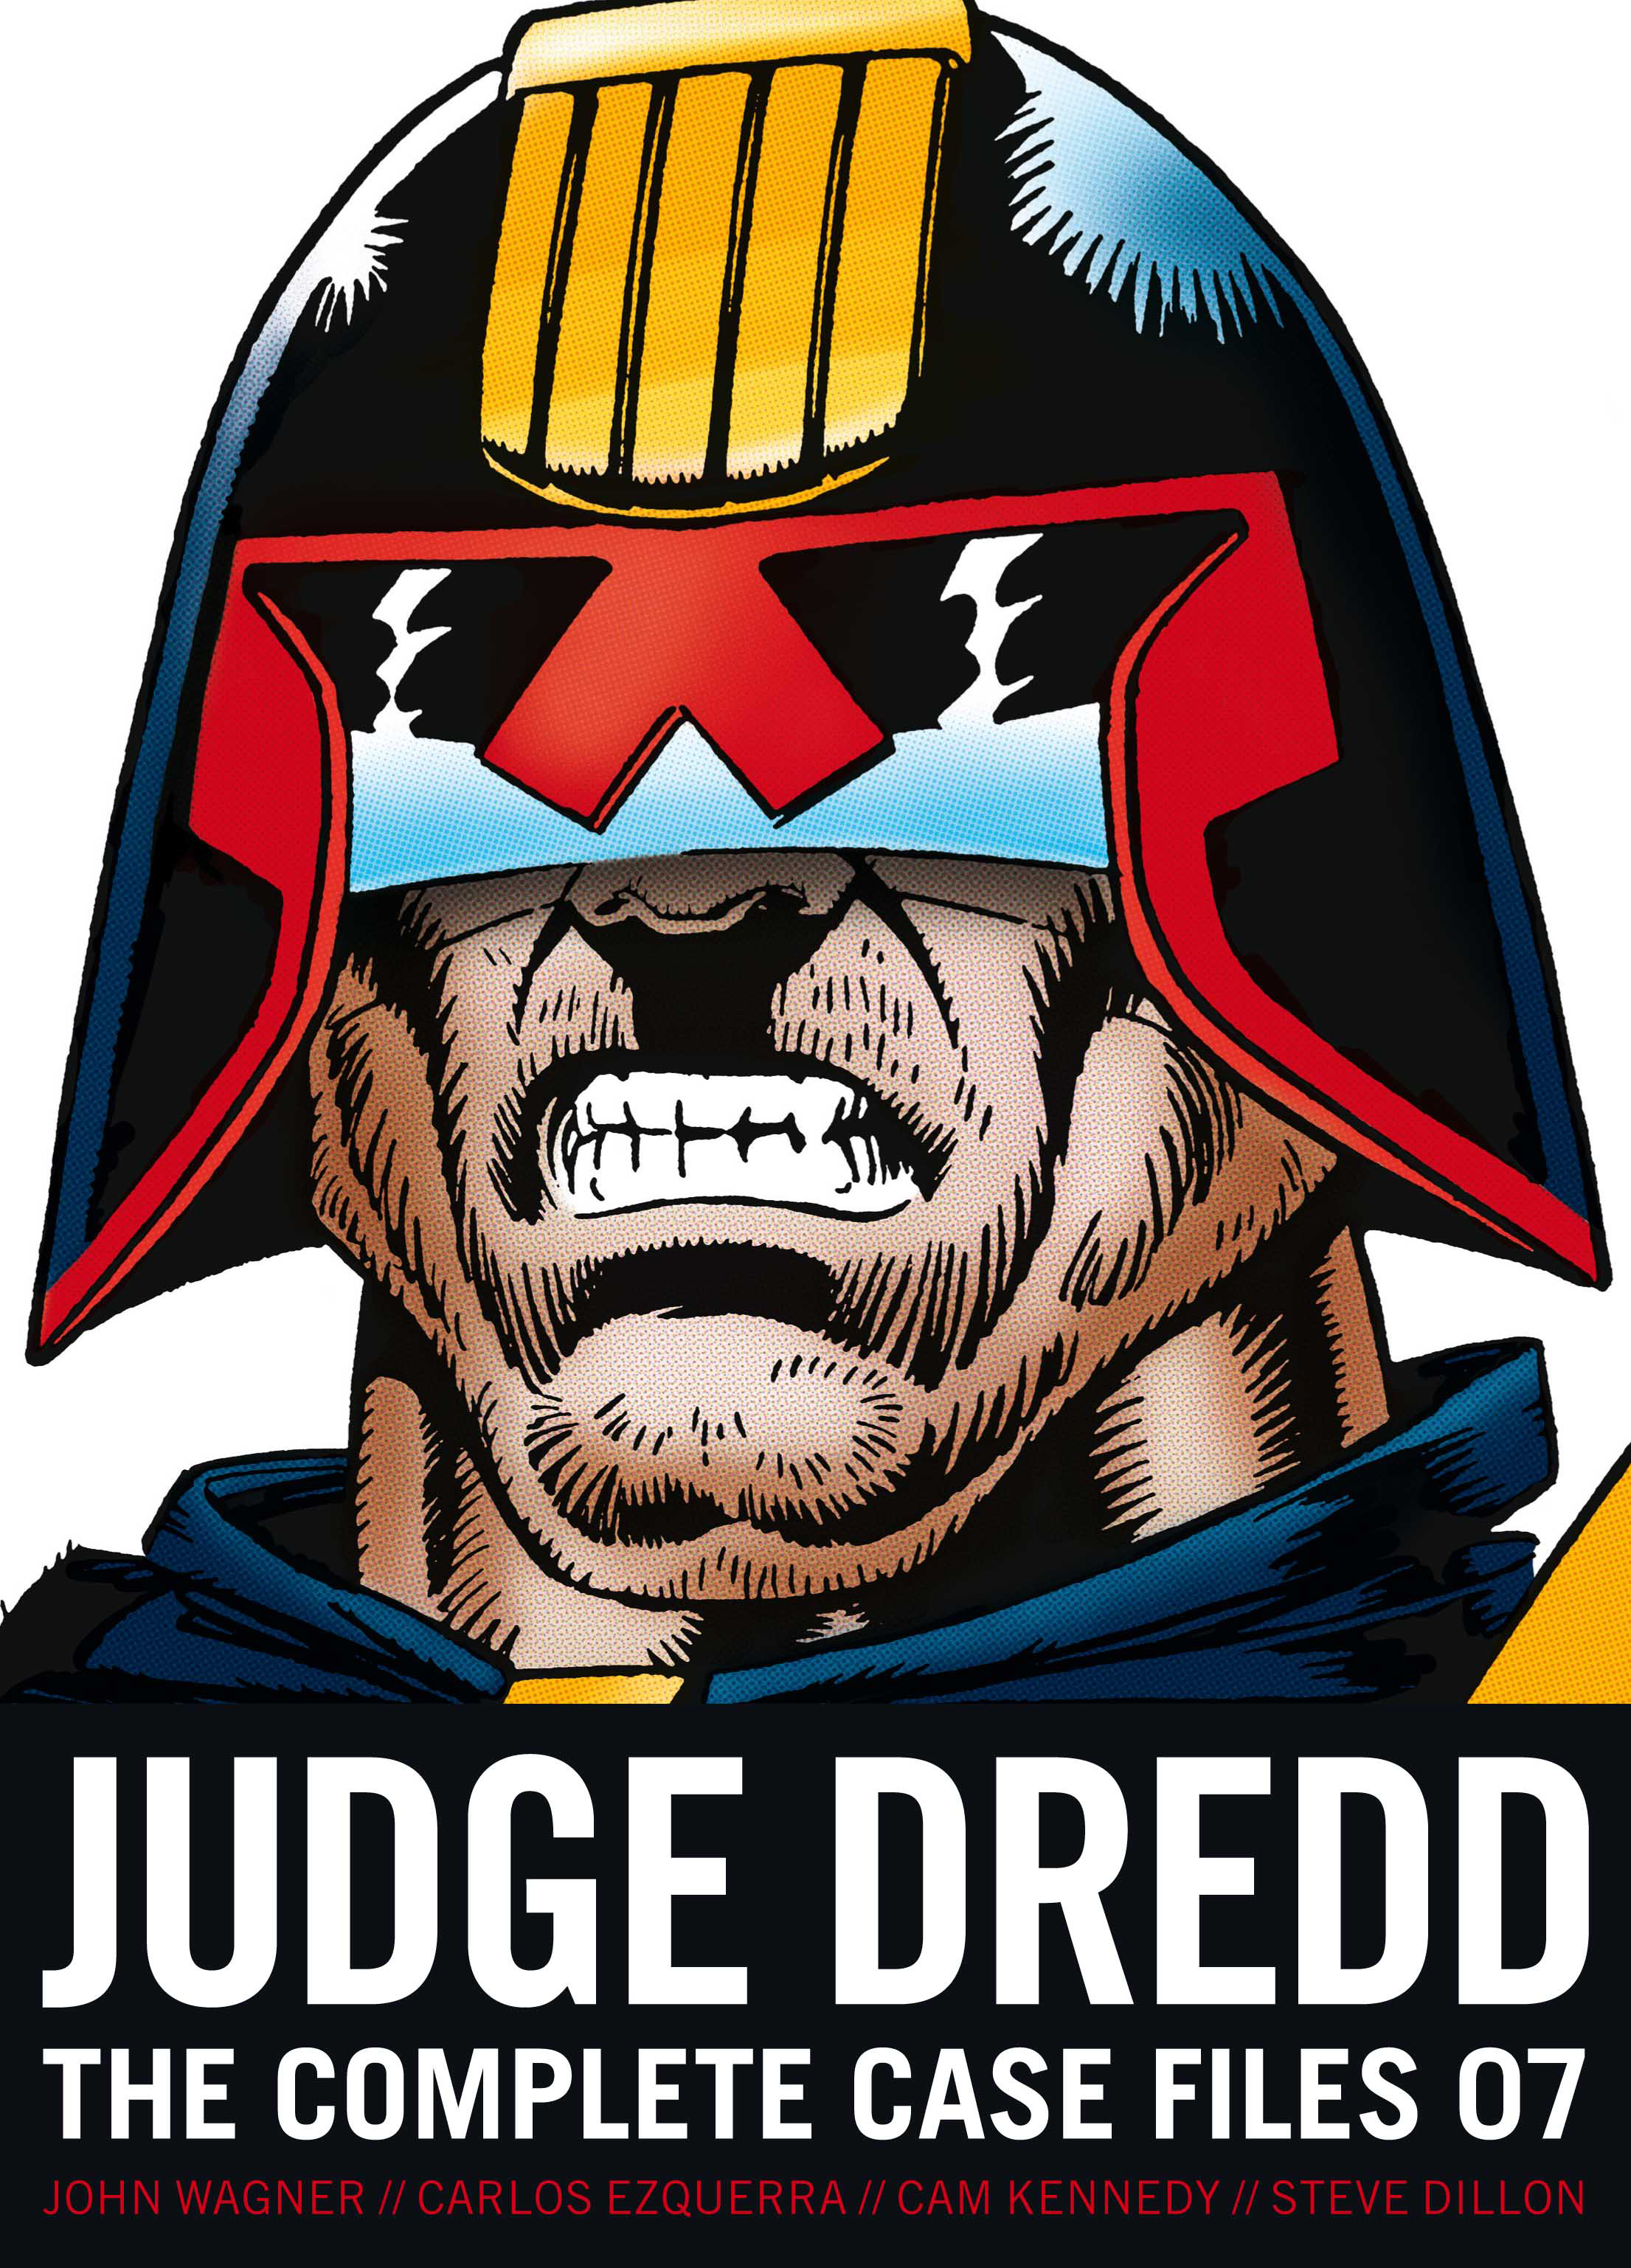 Judge-dredd-the-complete-case-files-07-9781781082171_hr